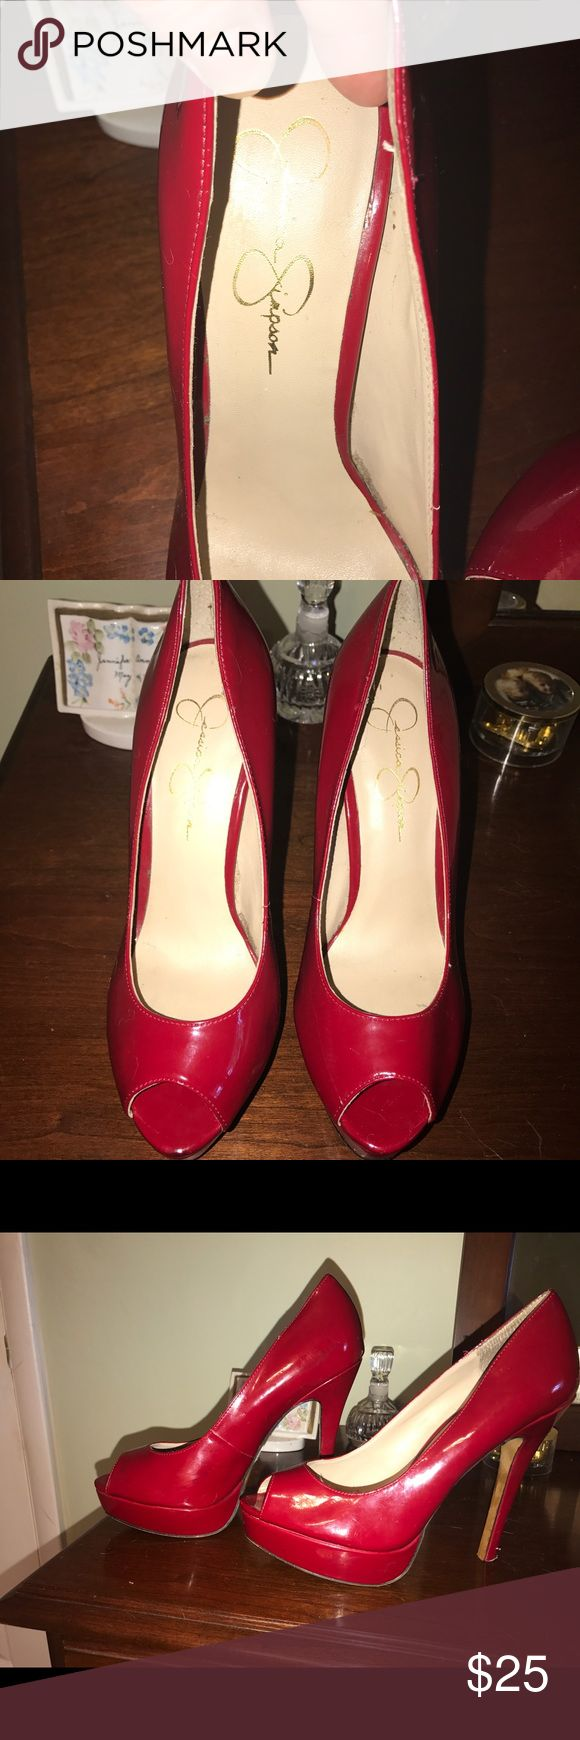 Red patent leather pumps Hot red patent leather pumps worn once great condition Jessica Simpson Shoes Heels